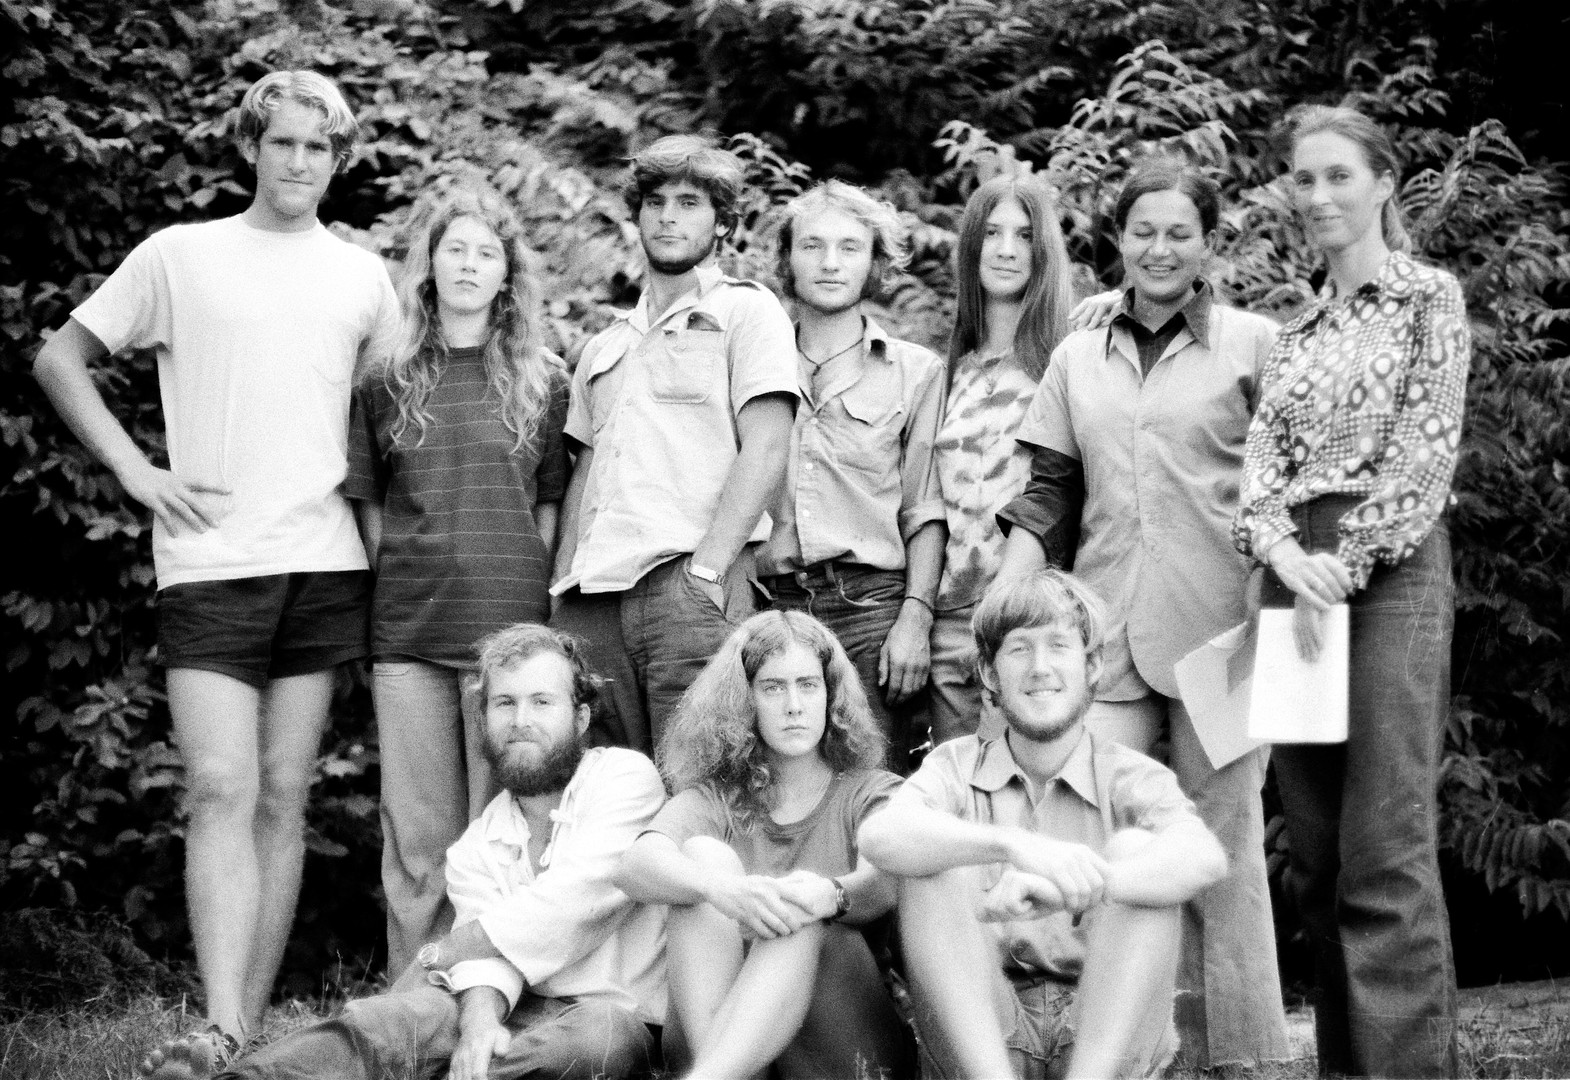 Our group of students and researchers. Back row from left: Curt Busse, Caroline Tutin, Grant Heidrich, Anthony Collins, Julie Johnson, Emilie Bergman Riss, and Jane. Front from left: Jim Moore, Lisa Nowell, and me. Photo courtesy of John Crocker, 1974.